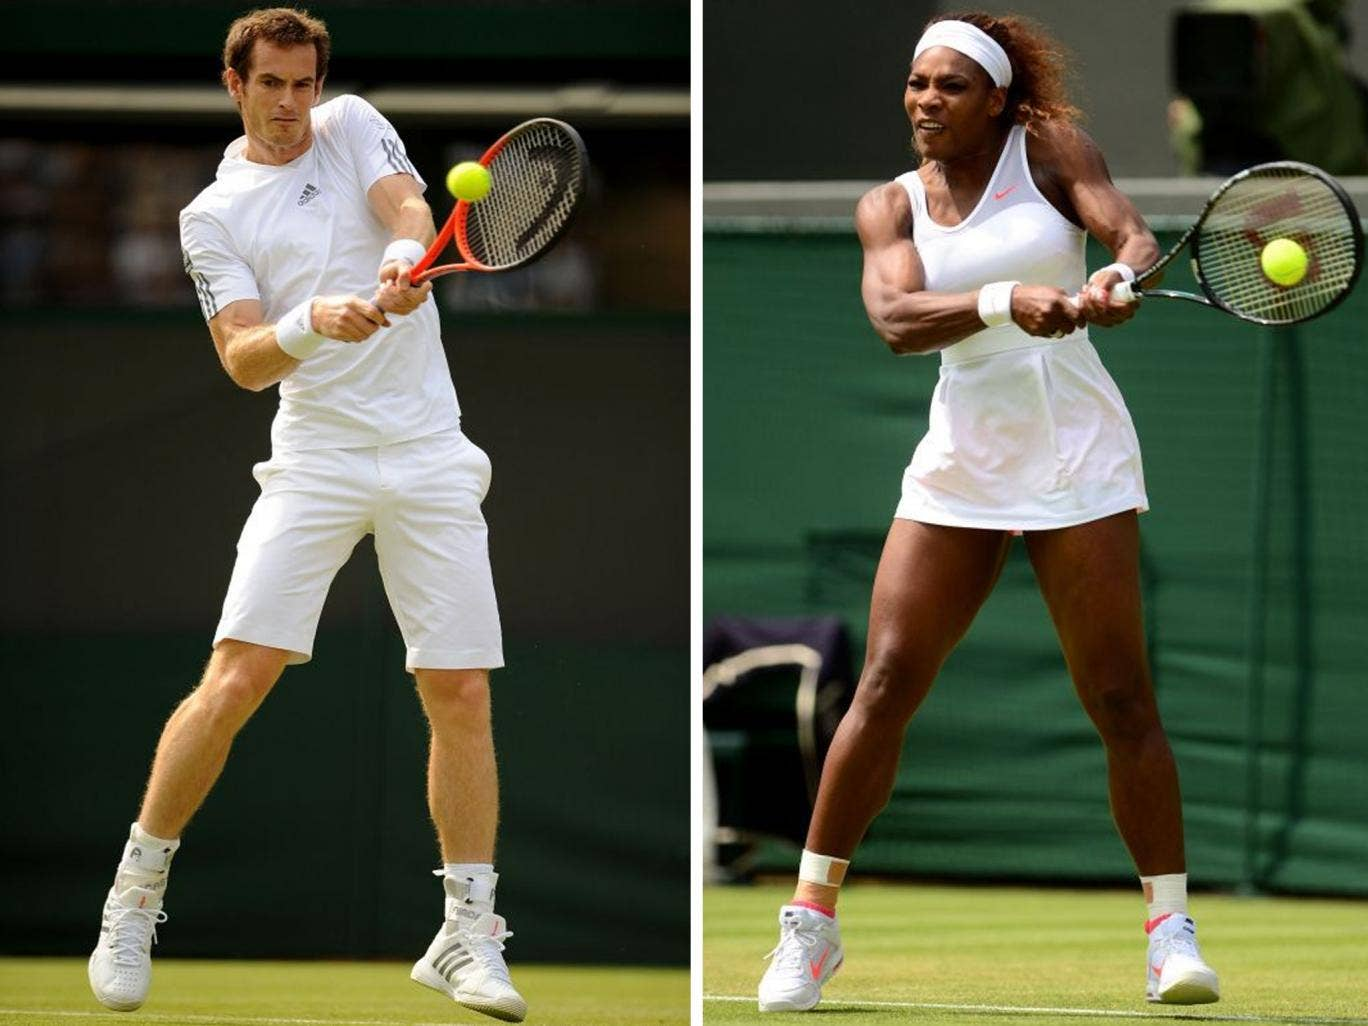 Andy Murray v Serena Williams? I'd be up for it, he says. That would be fun, she says.